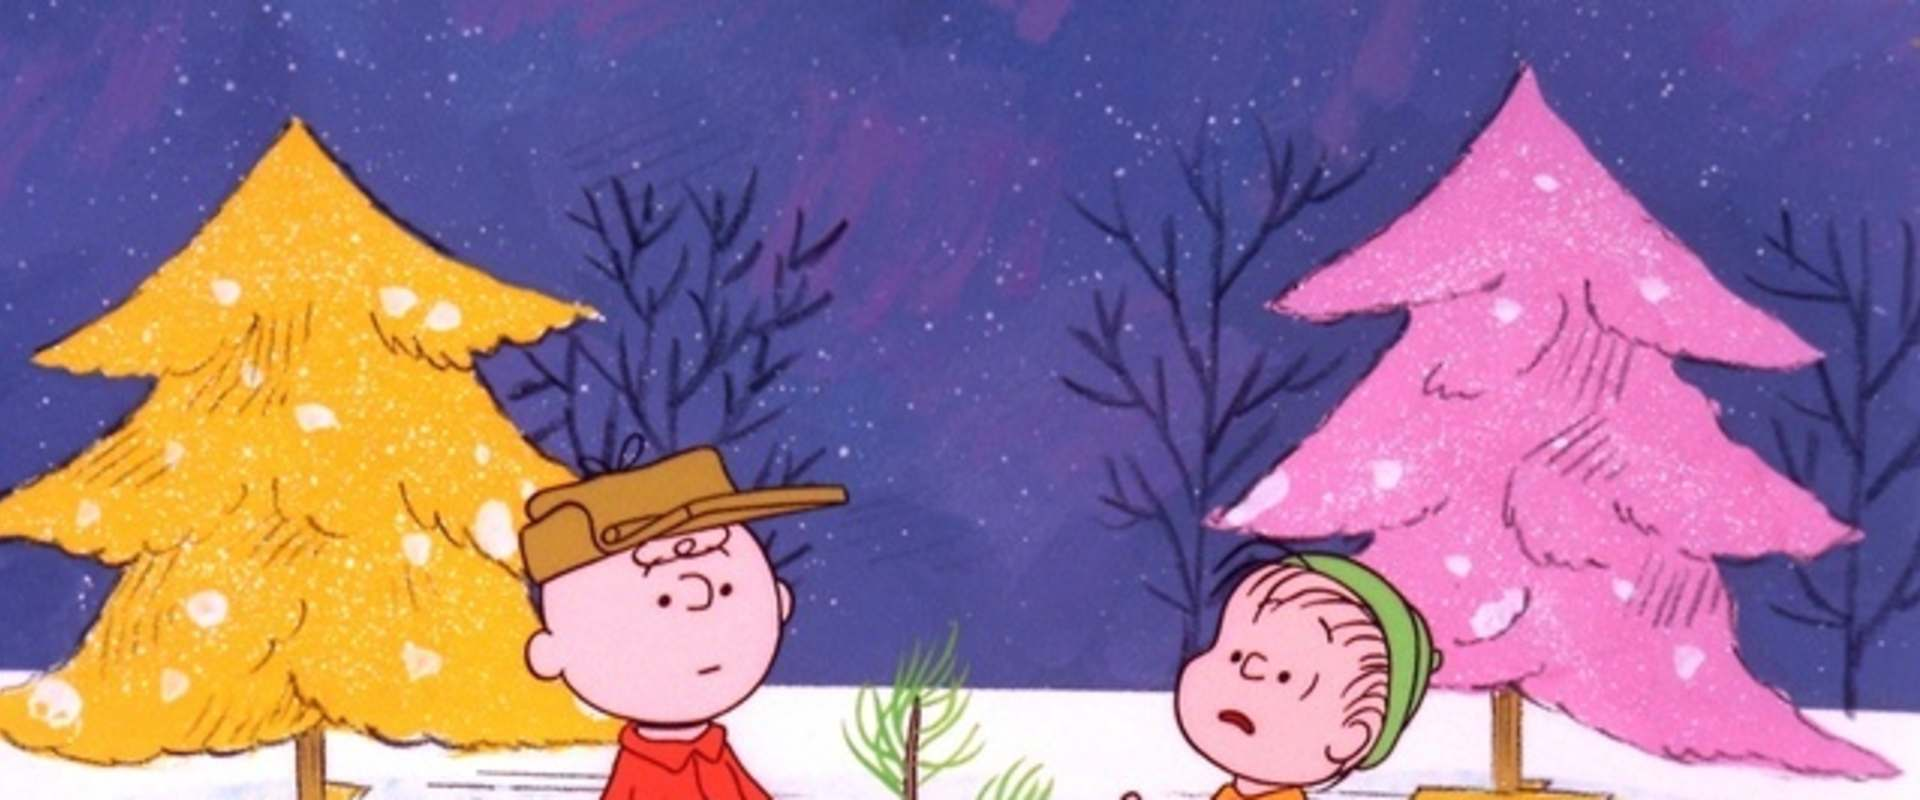 A Charlie Brown Christmas background 2